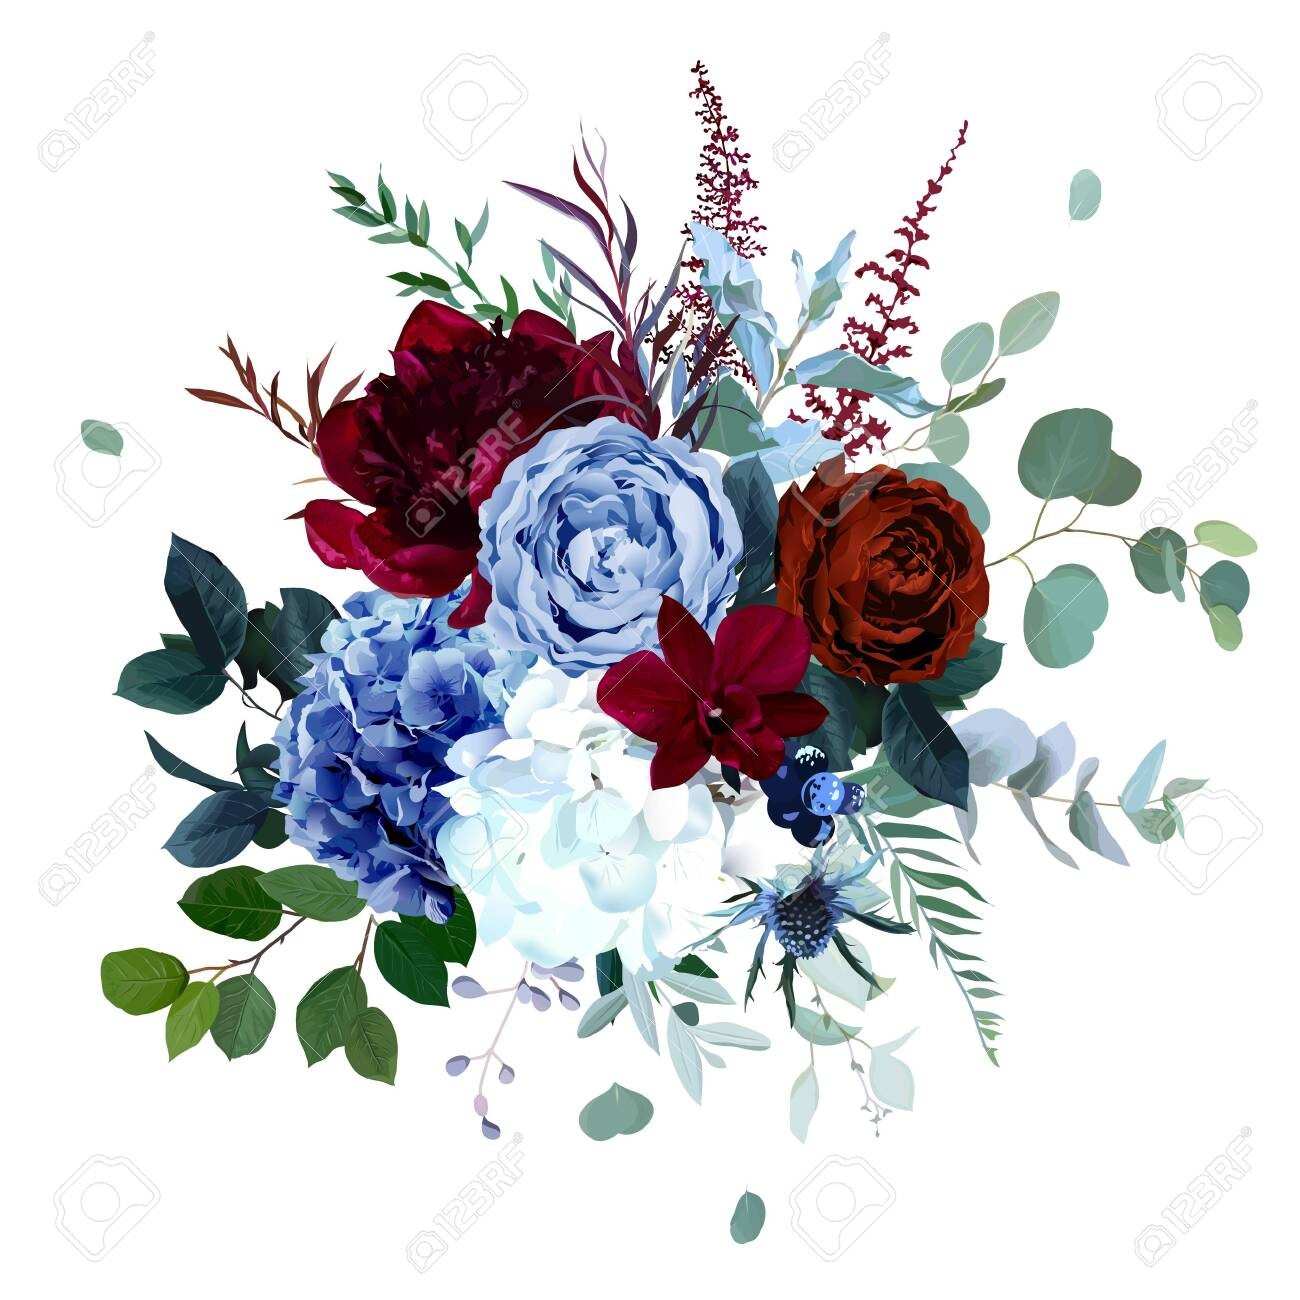 Royal blue, navy garden rose, white hydrangea, burgundy red peony flowers, orchid, anthurium, thistle, eucalyptus, berry vector design wedding bouquet. Floral watercolor style. Isolated and editable - 147050262